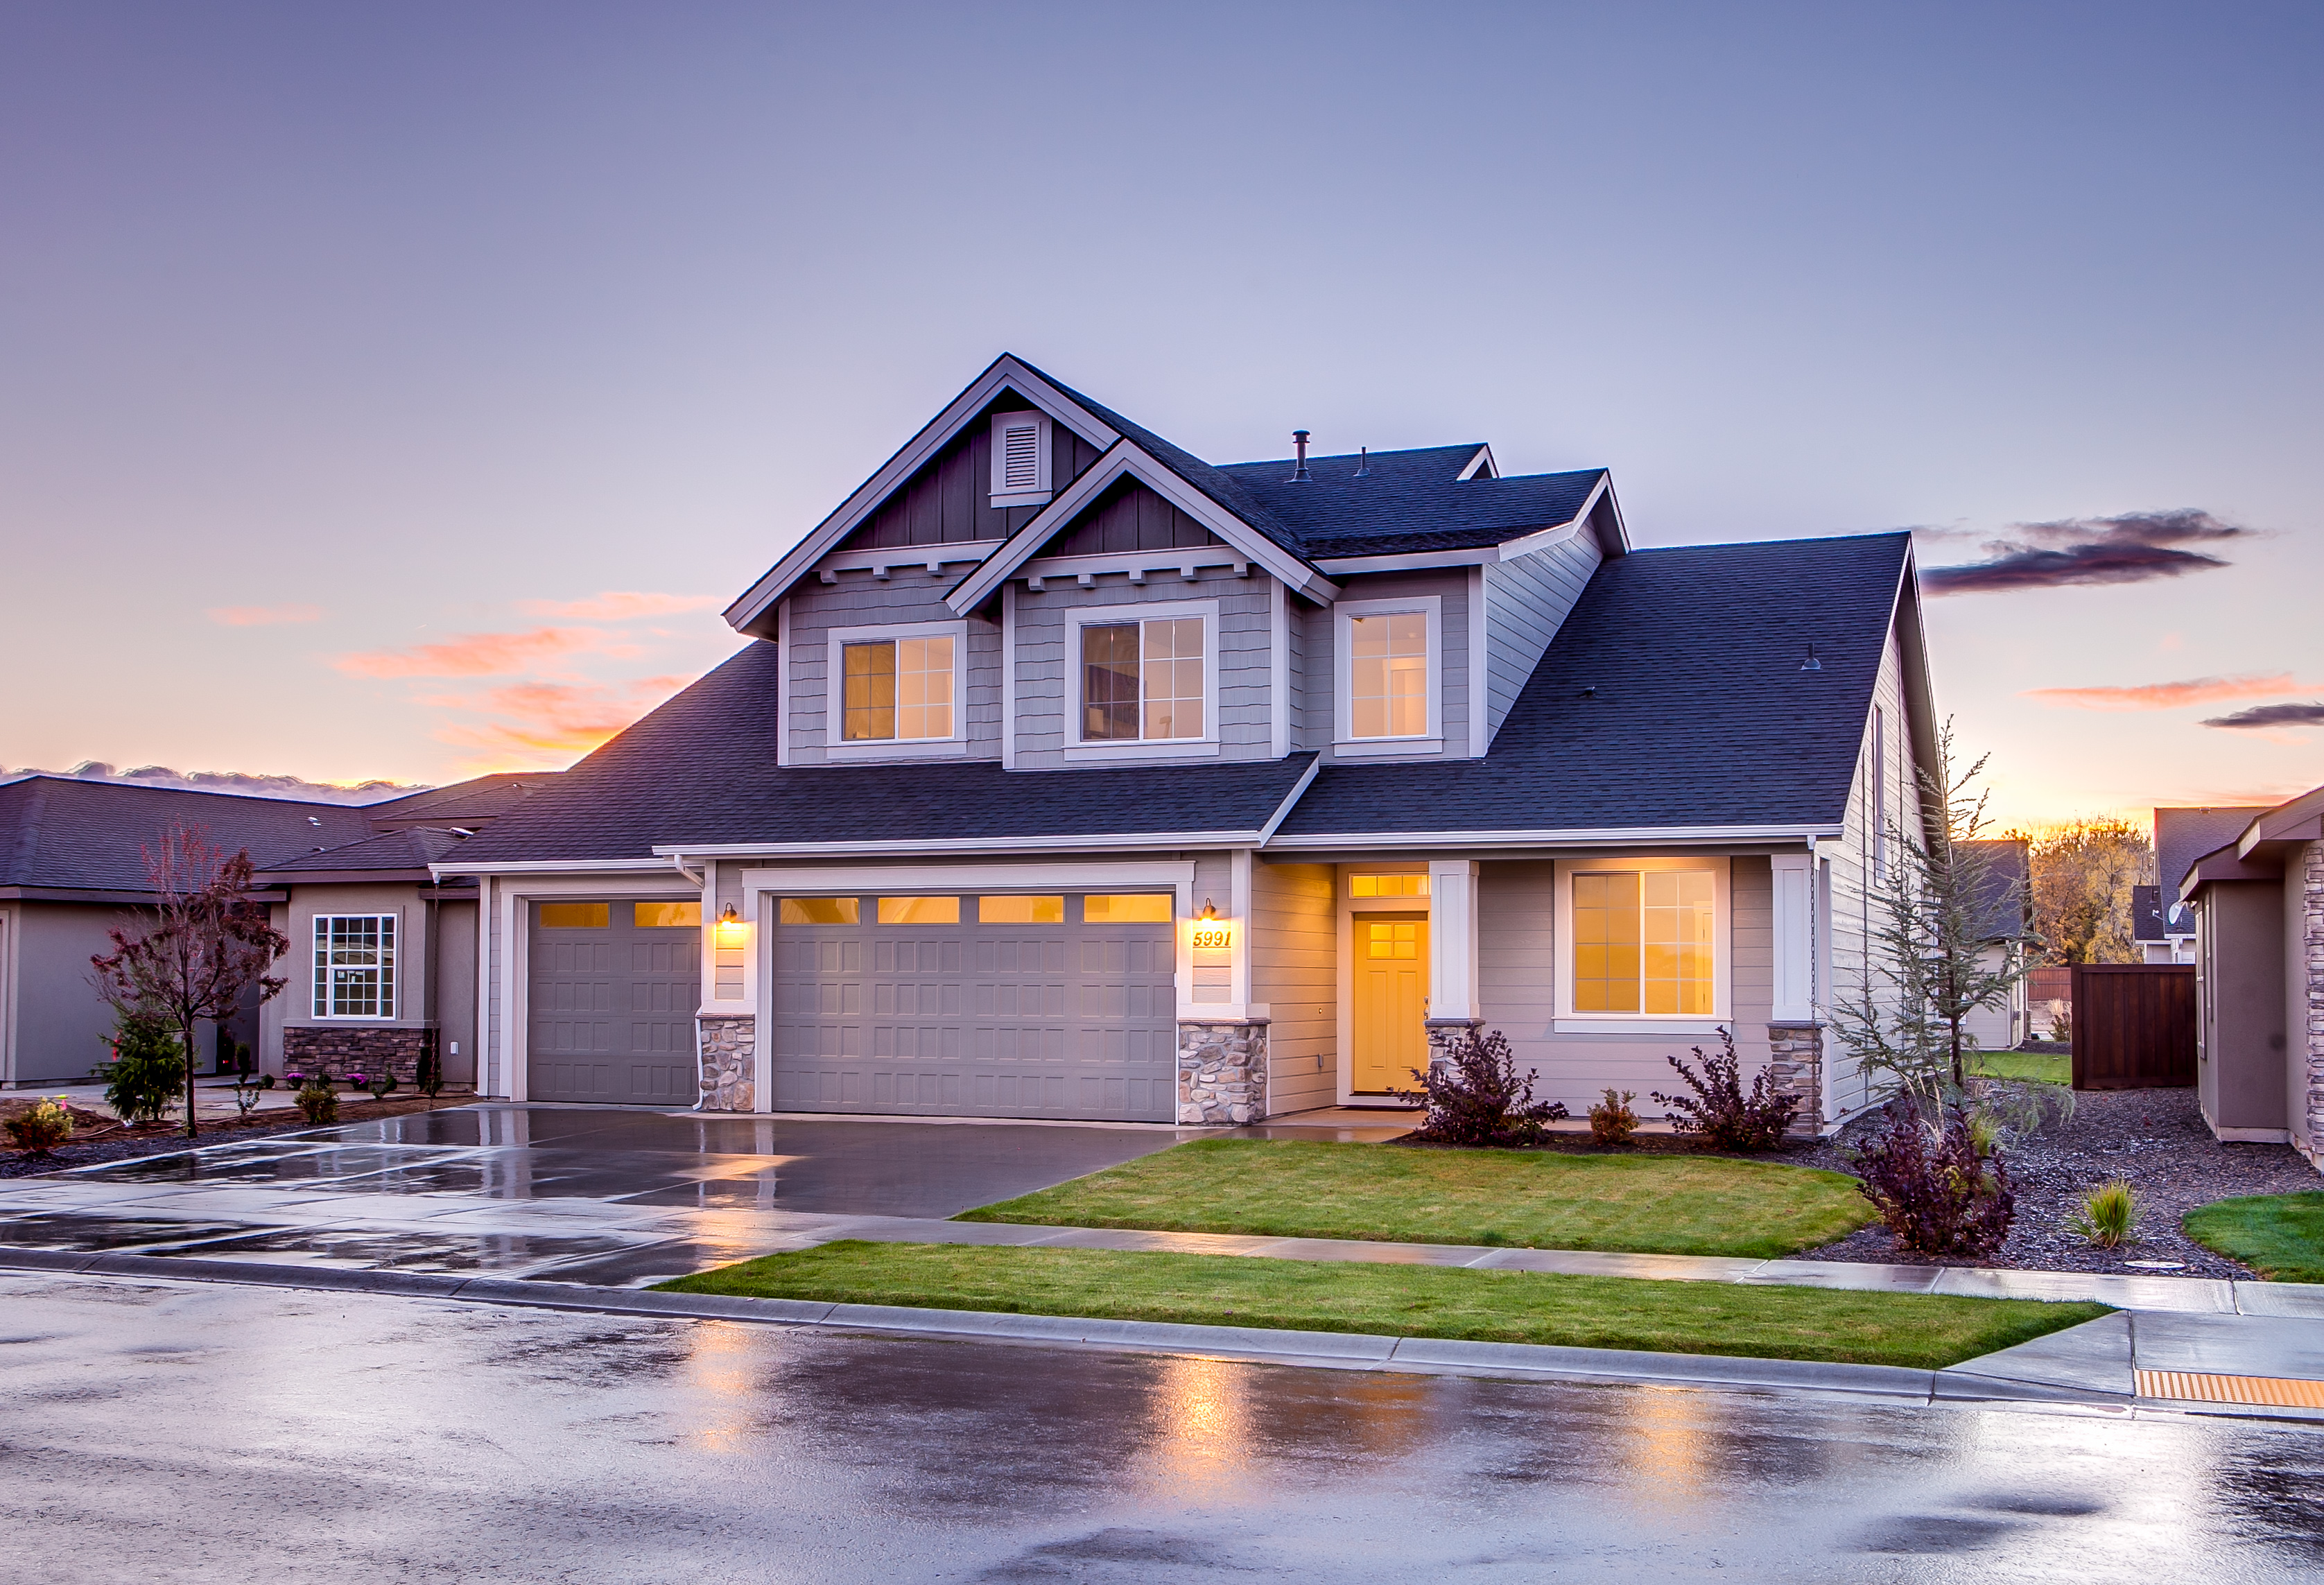 7 Helpful Tips To Sell Your Home Quickly